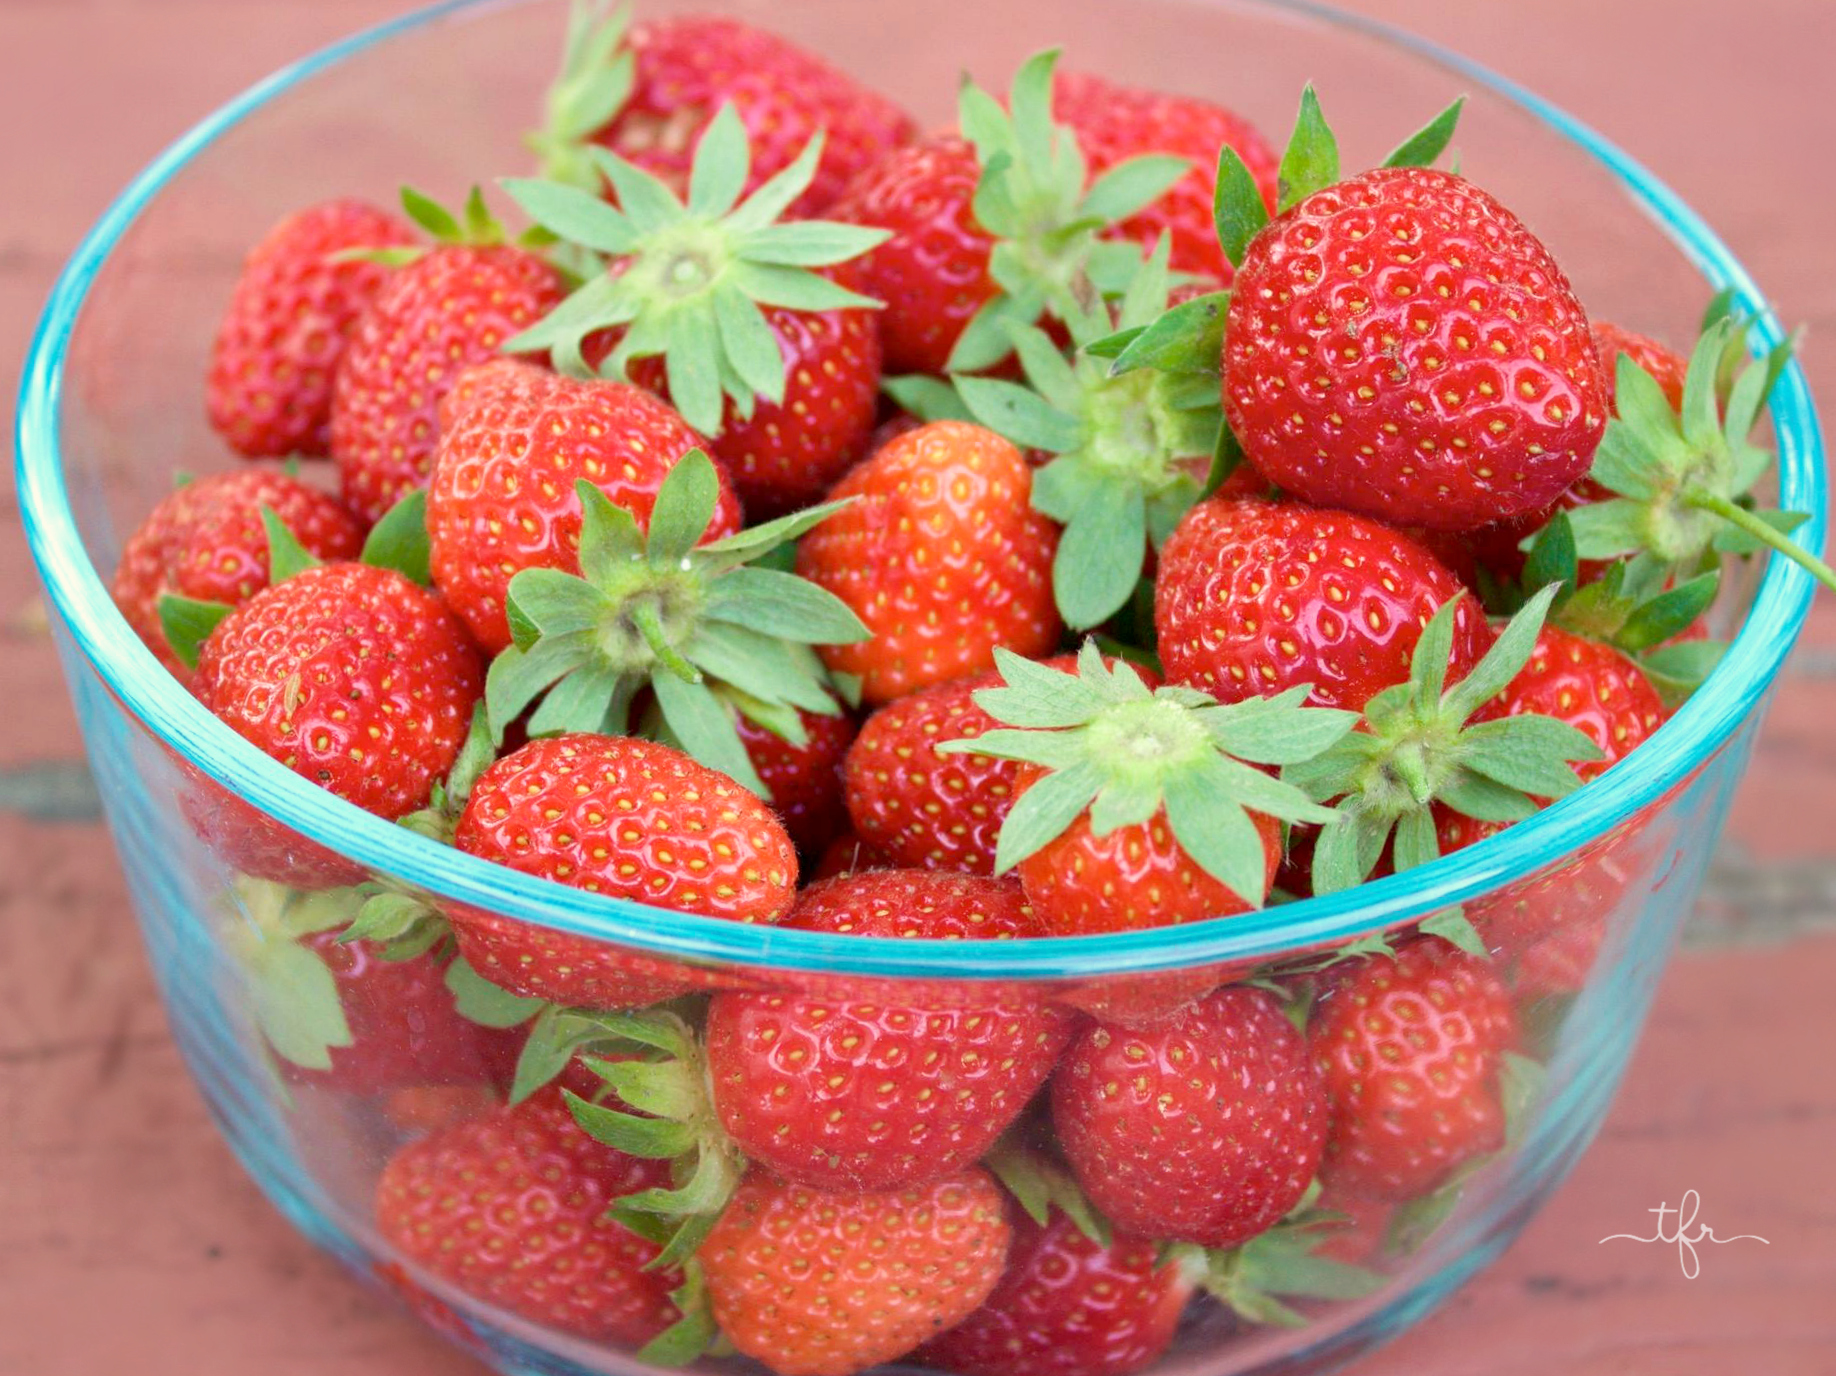 It is best to pick in the early morning hours when the berries are still cool. While you are picking, keep an eye out for damaged or bruised fruit. Make sure to discard them to encourage more healthy growth. A Simple Guide To Growing Strawberries - Angie The Freckled Rose